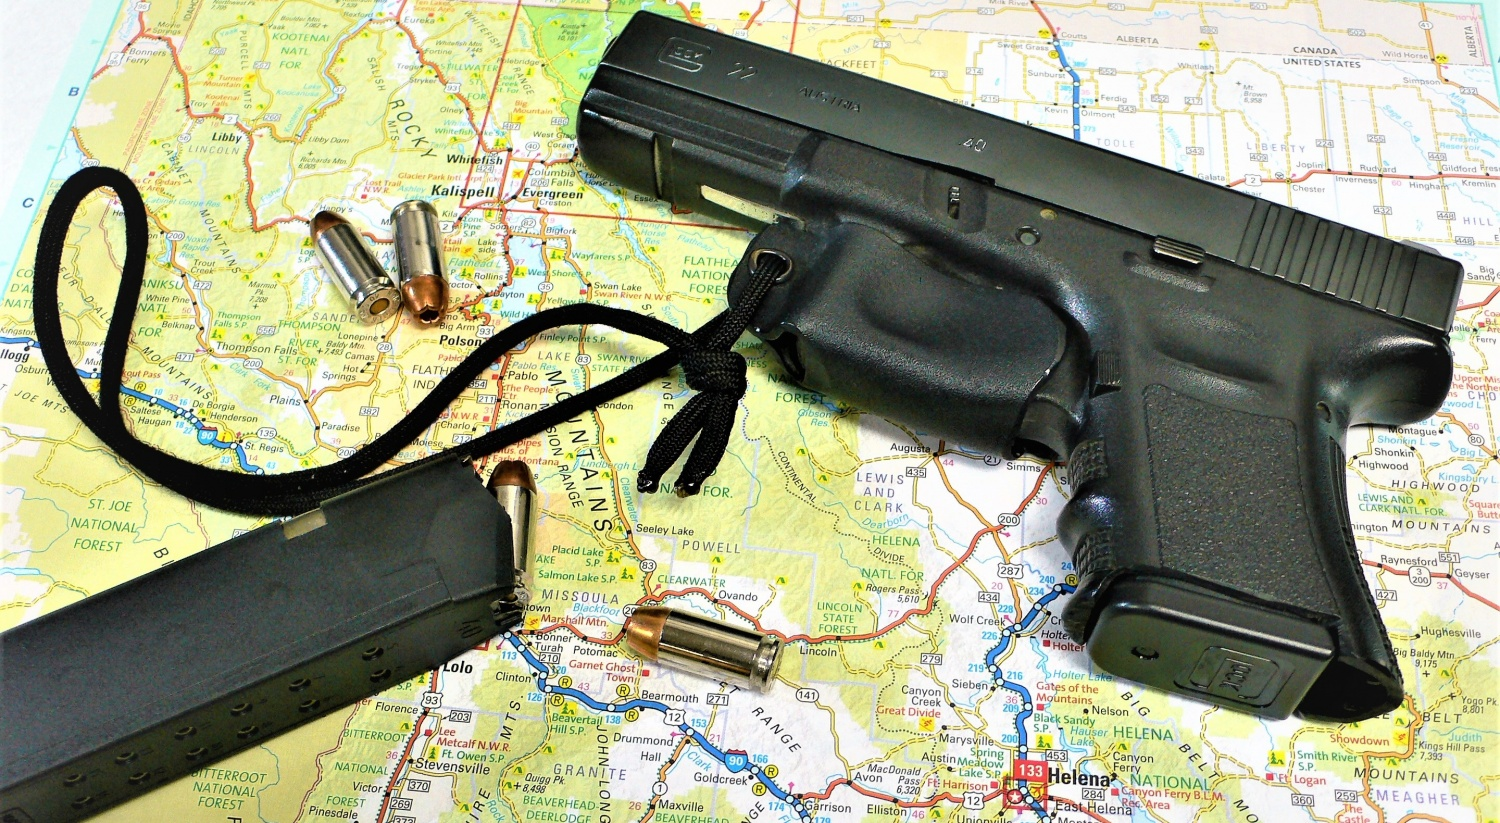 Carrying With Trigger Guard Holsters